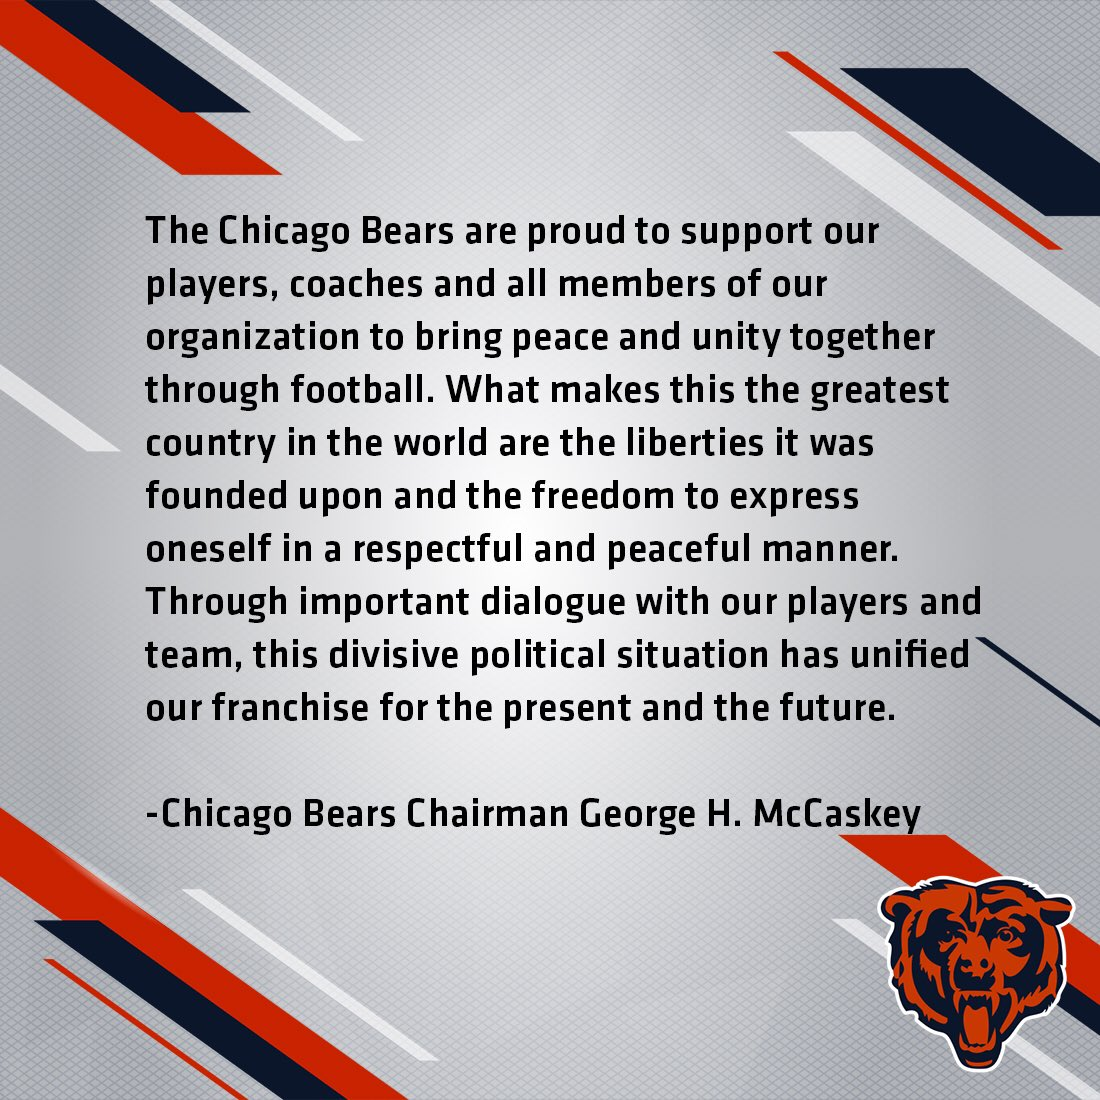 Statement from Chicago Bears Chairman George H. McCaskey. https://t.co...